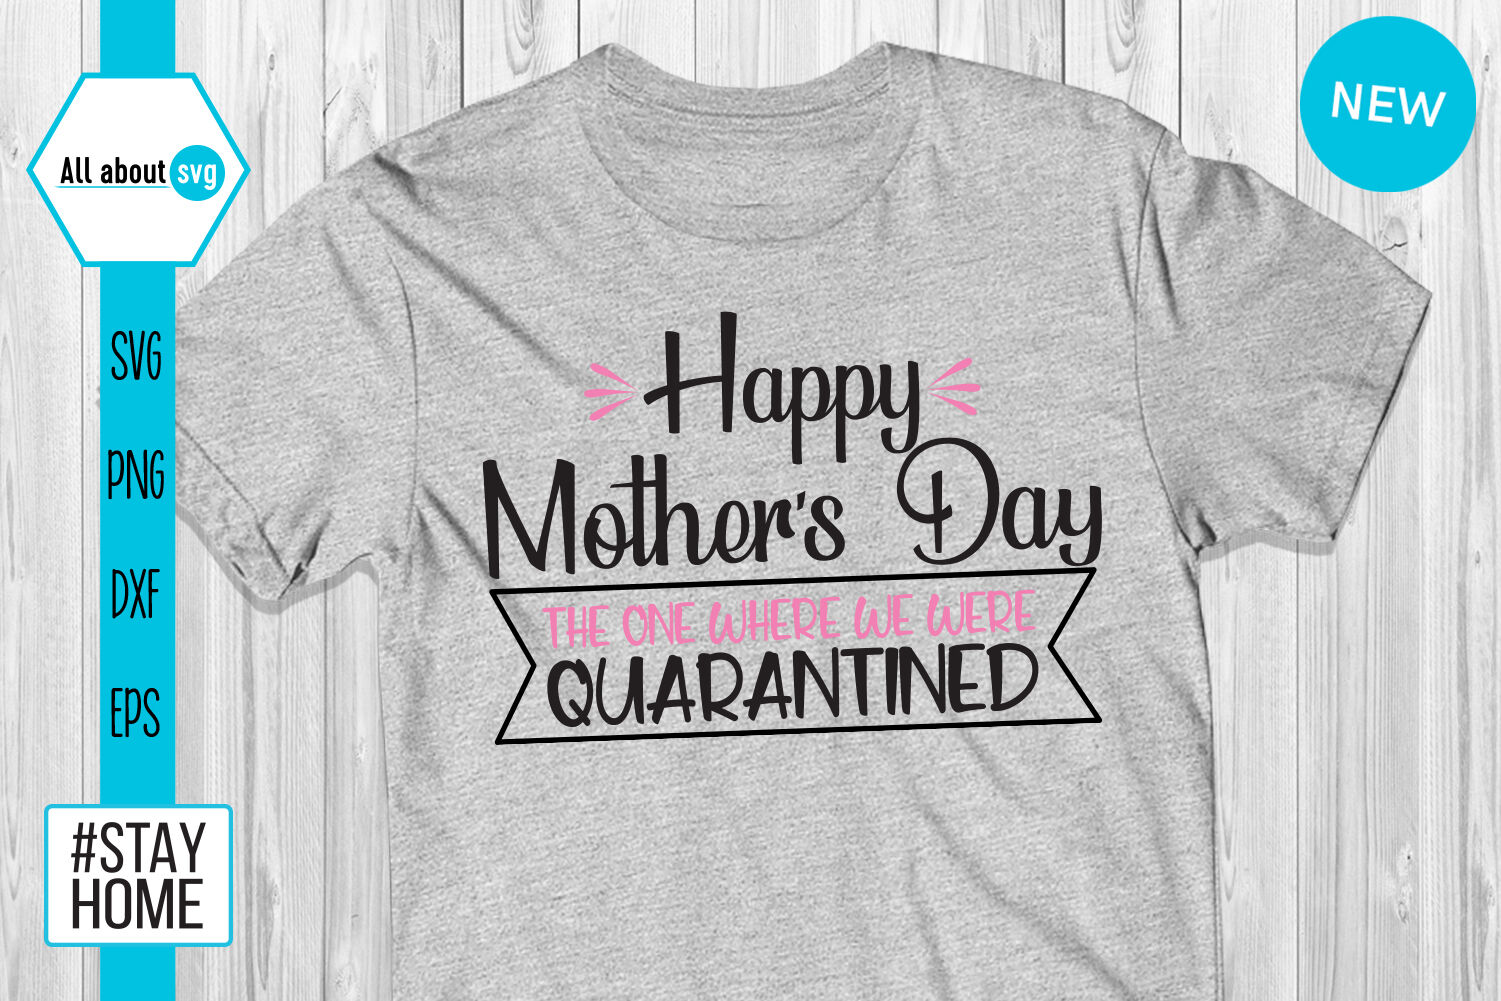 Happy Mothers Day Svg Quarantine Svg By All About Svg